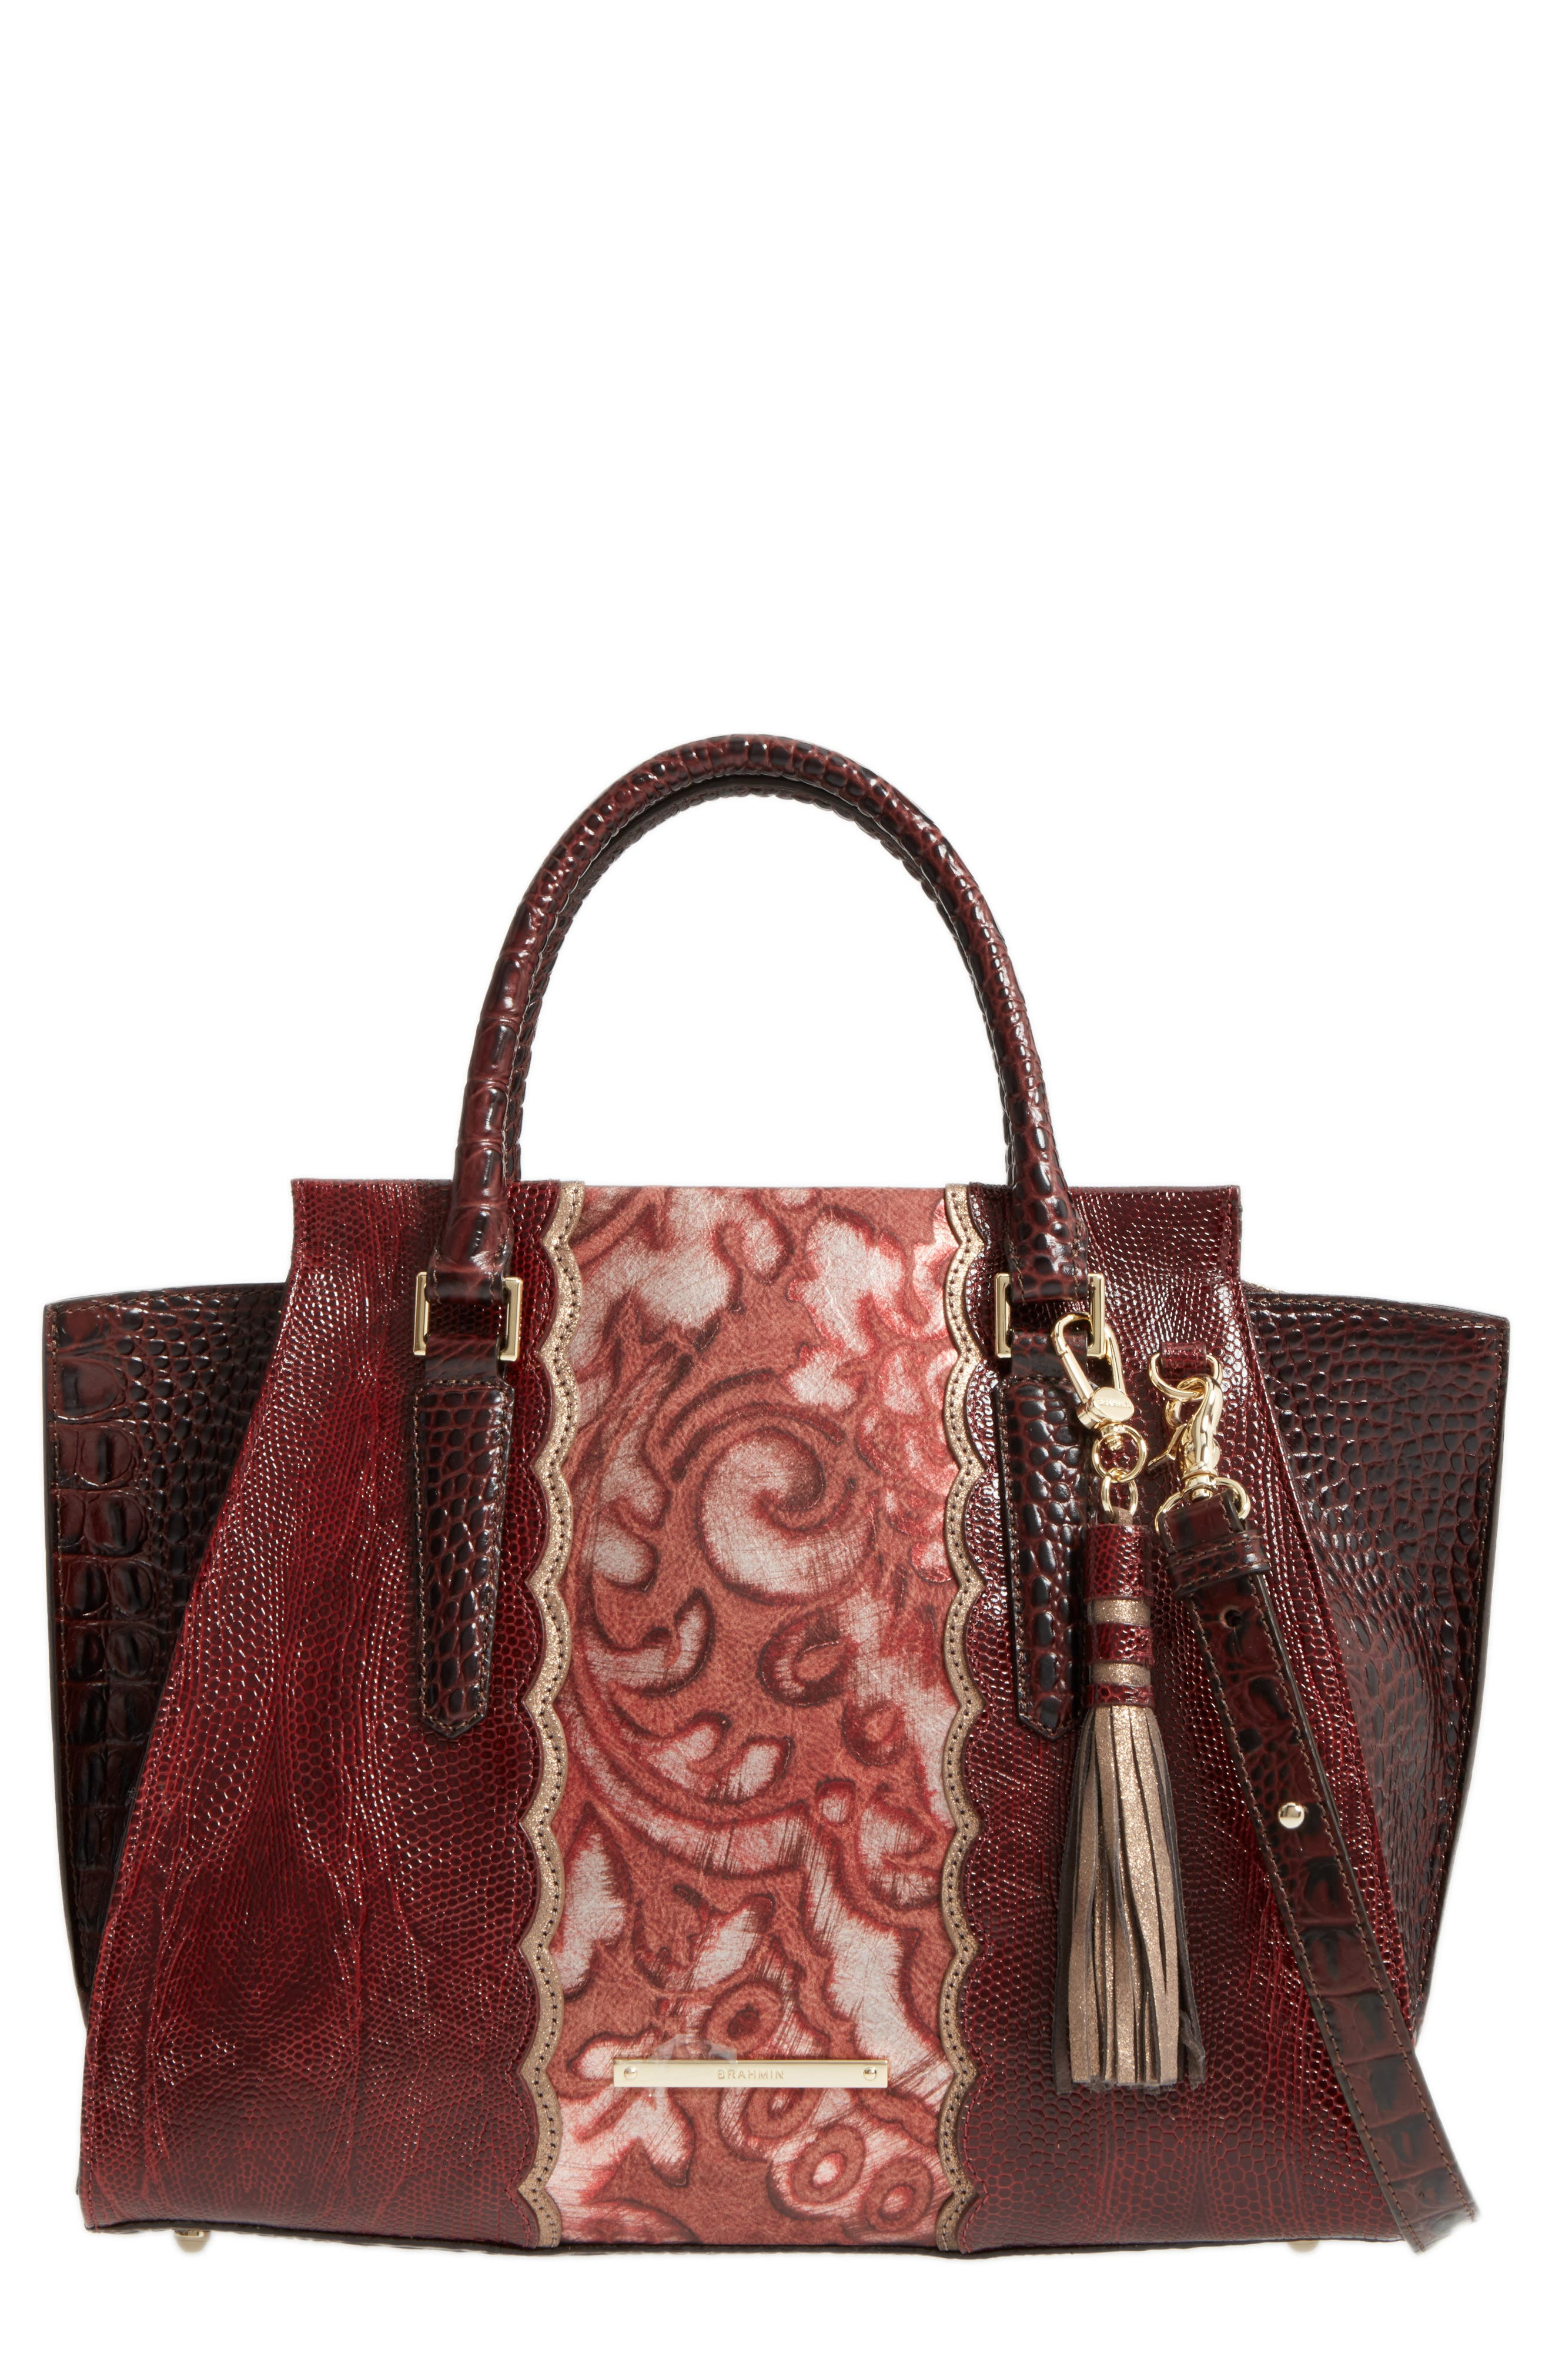 Red Verona - Priscilla Leather Satchel,                             Main thumbnail 1, color,                             610